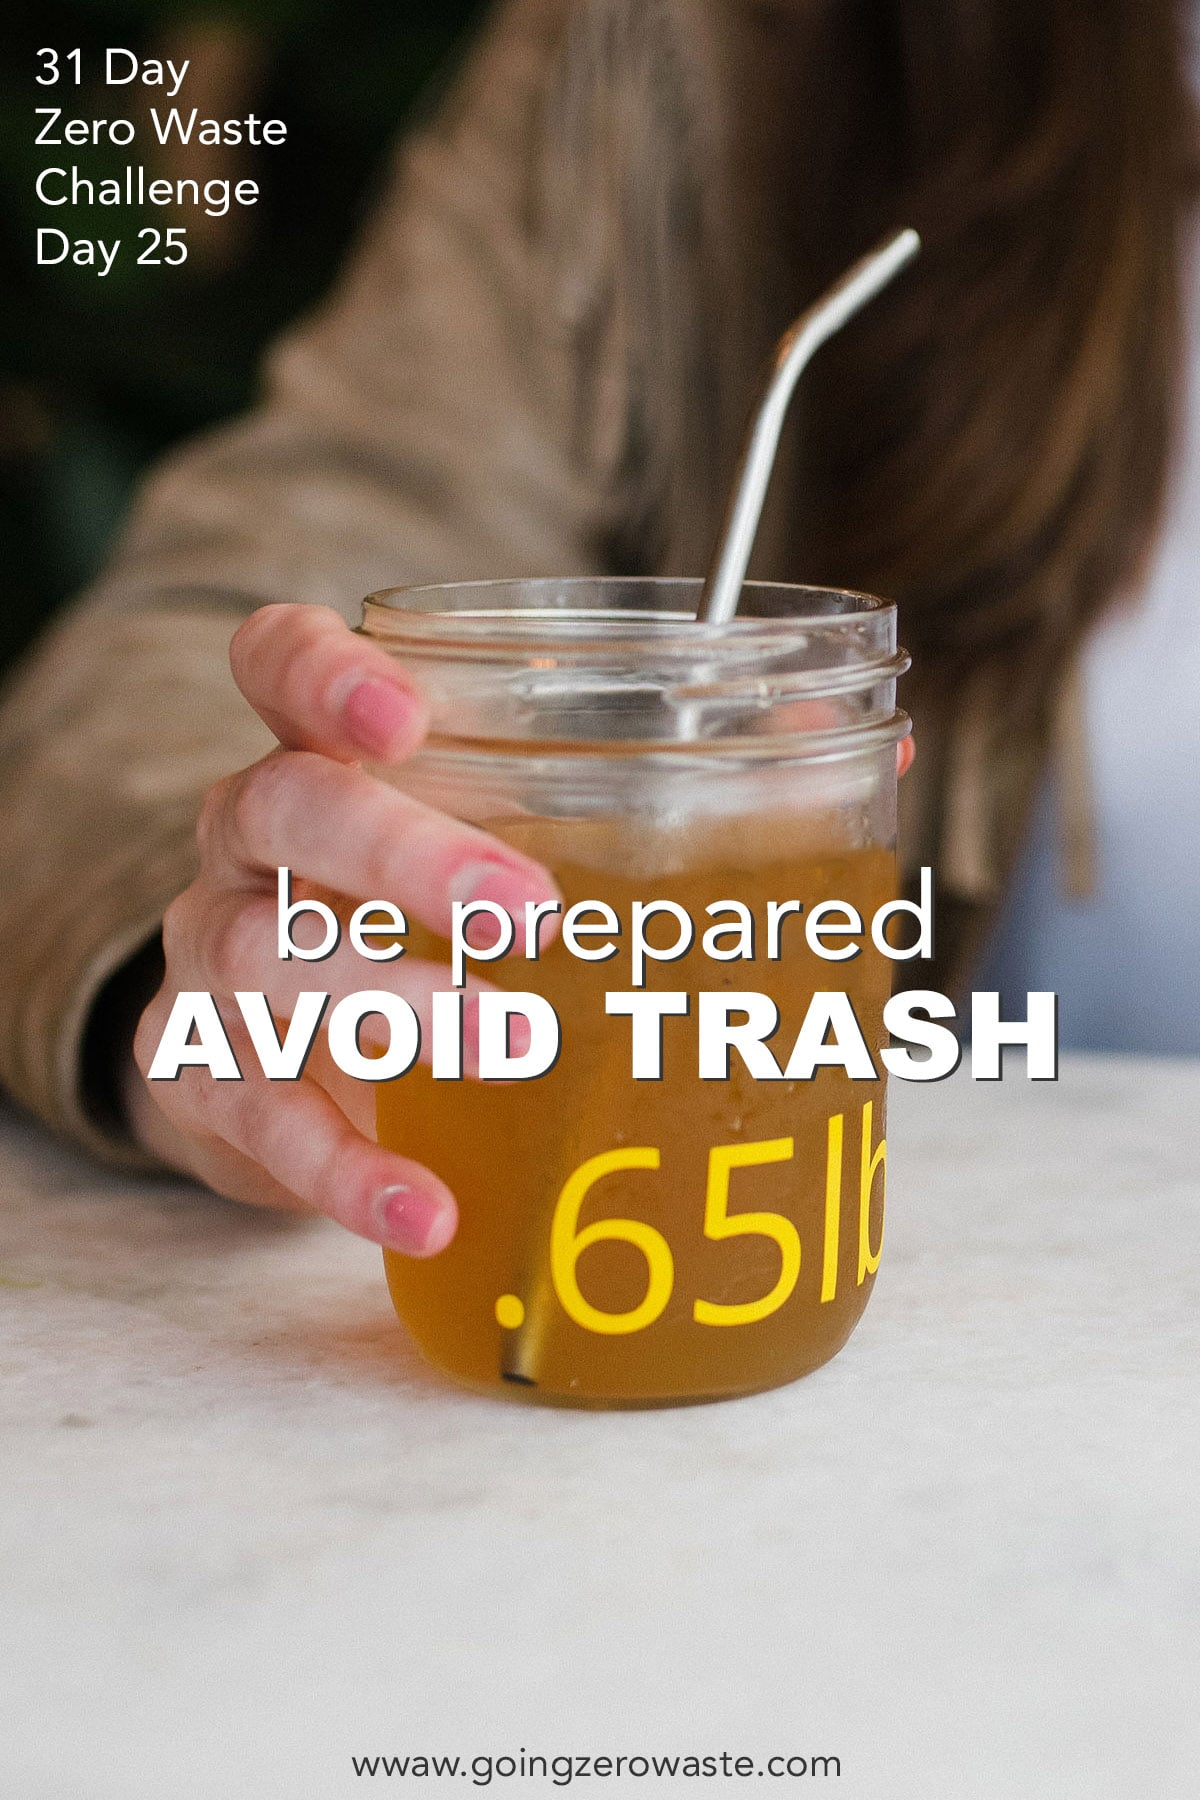 Be Prepared and Avoid Trash - Day 25 of the Zero Waste Challenge from www.goingzerowaste.com #zerowaste #ecofriendly #gogreen #sustainable #zerowastechallenge #challenge #sustainablelivingchallenge #beprepared #avoidtrash